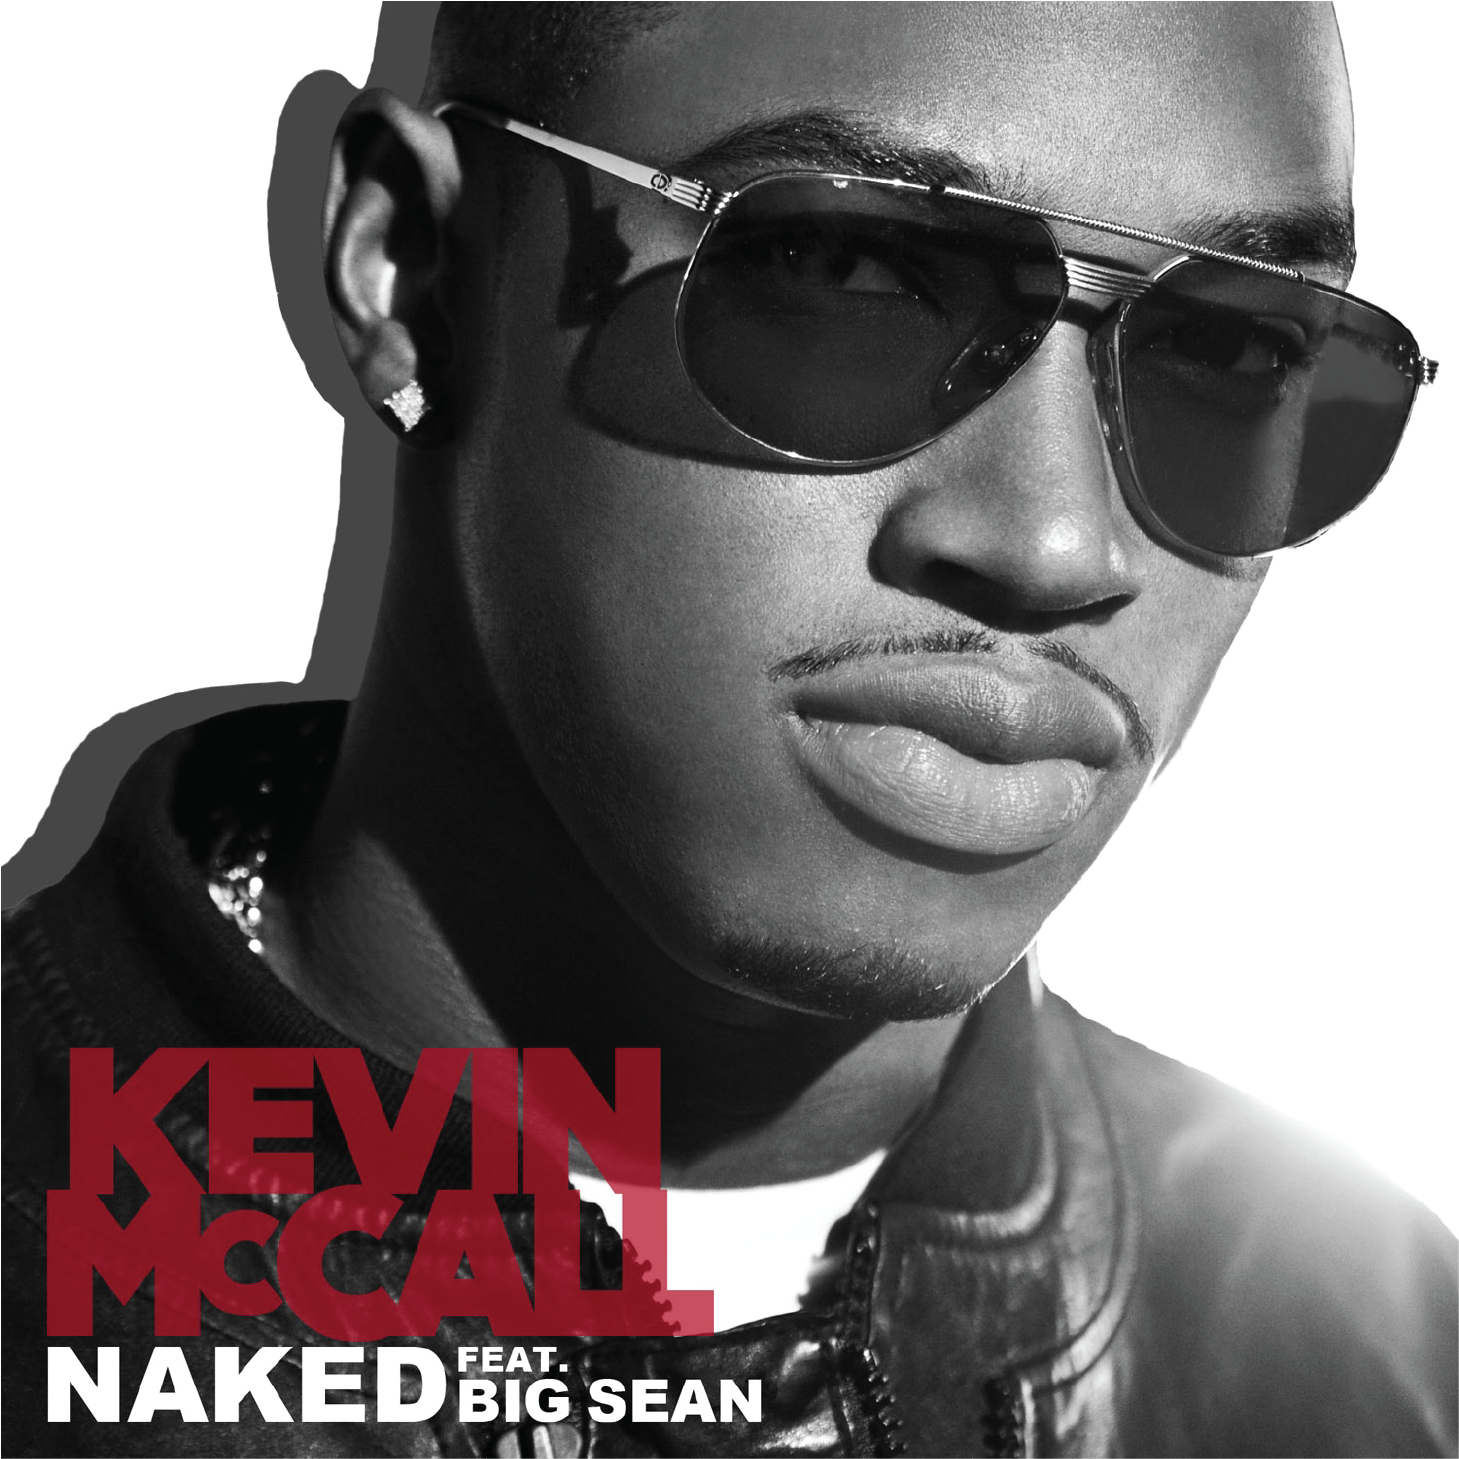 'Naked'By Kevin McCall ft. Big Sean Hits The Radio   Universal Music Group artist Kevin McCall' new single, Co-Written by 1916's own Alexander 'Xplicit' Izquierdo. (2012)